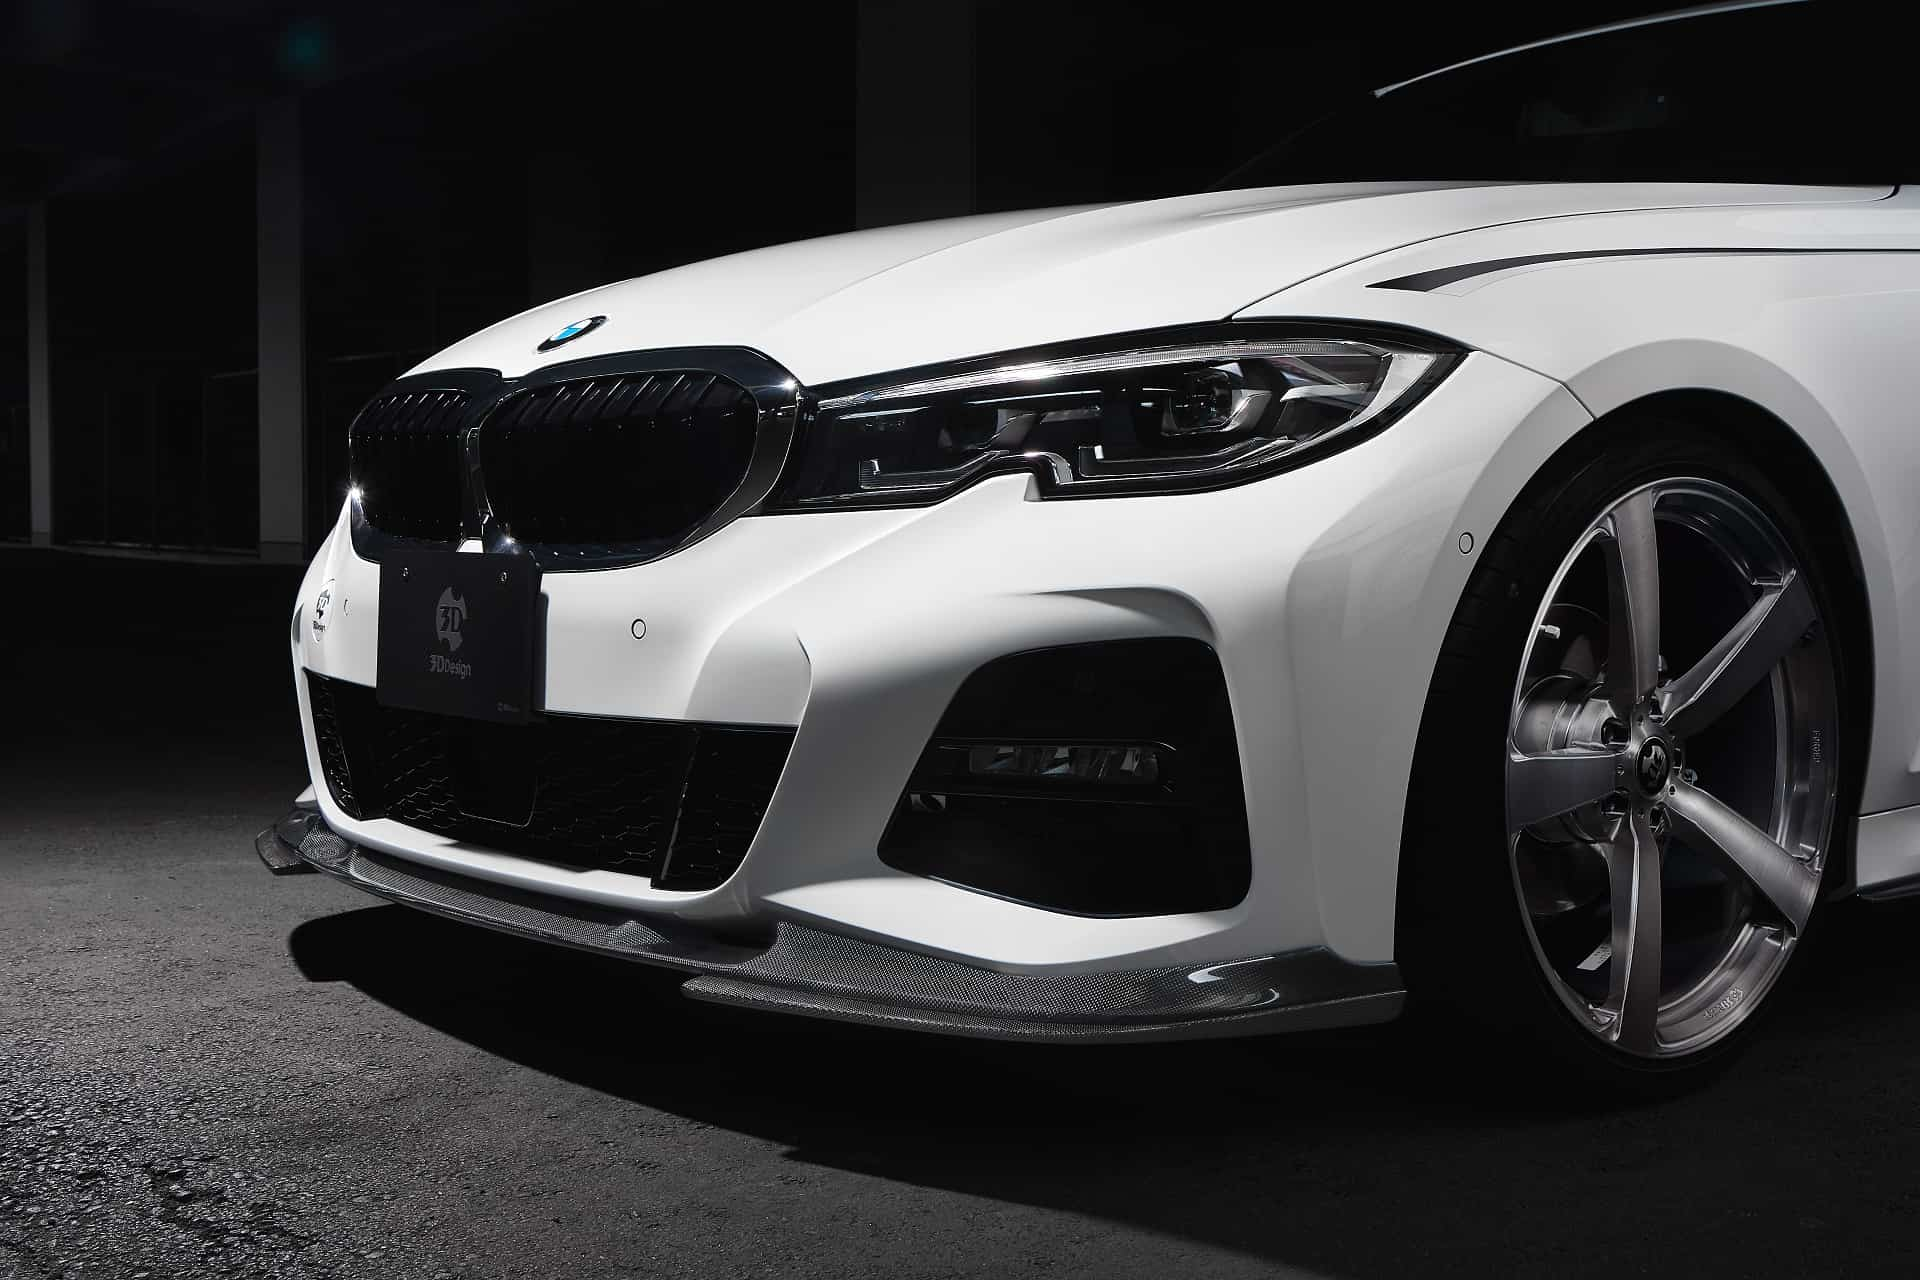 Aerodynamics and body kits for BMW 3 Series G20, G21 by 3Ddesign